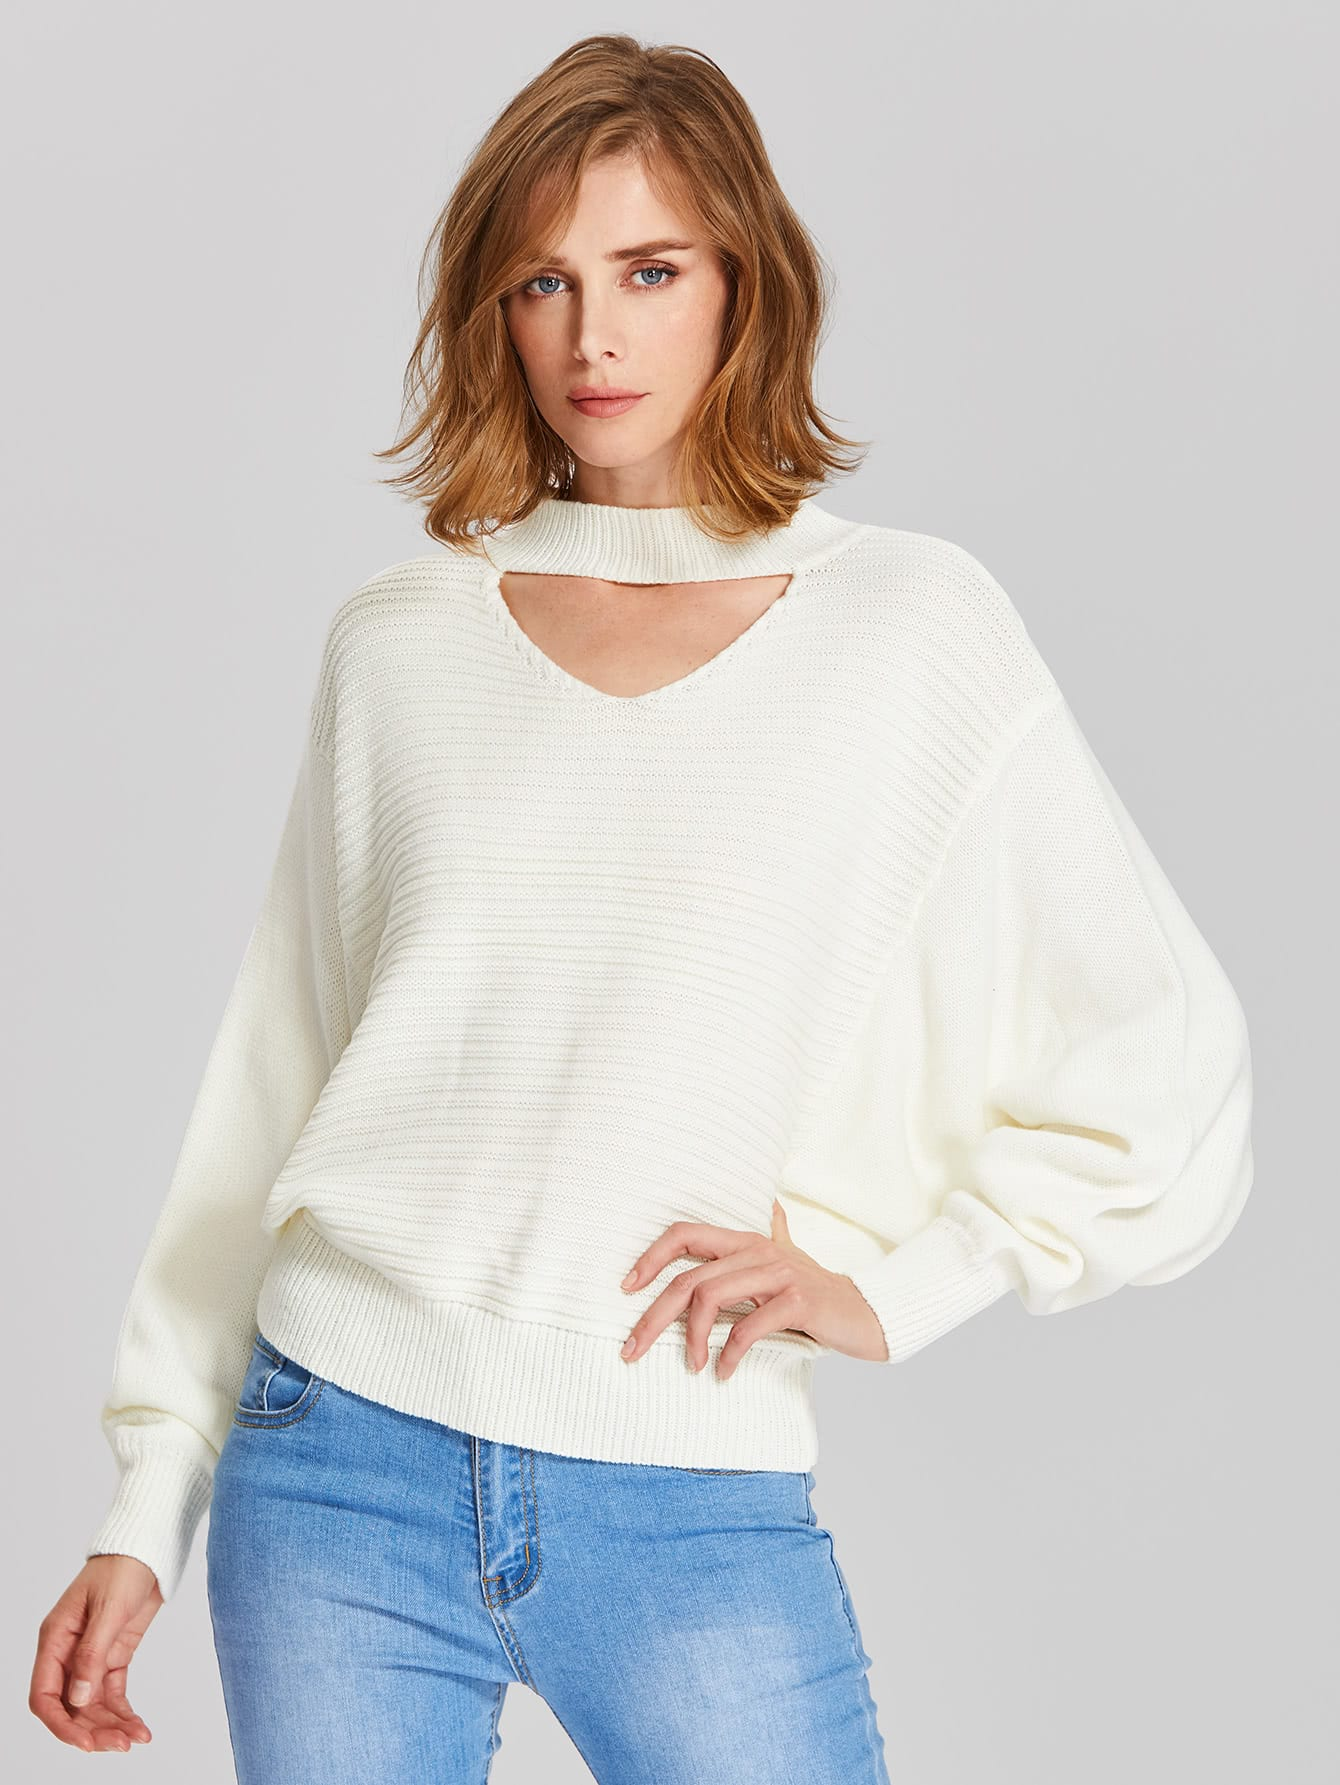 Cutout Dolman Sleeve Jumper sweater170627457